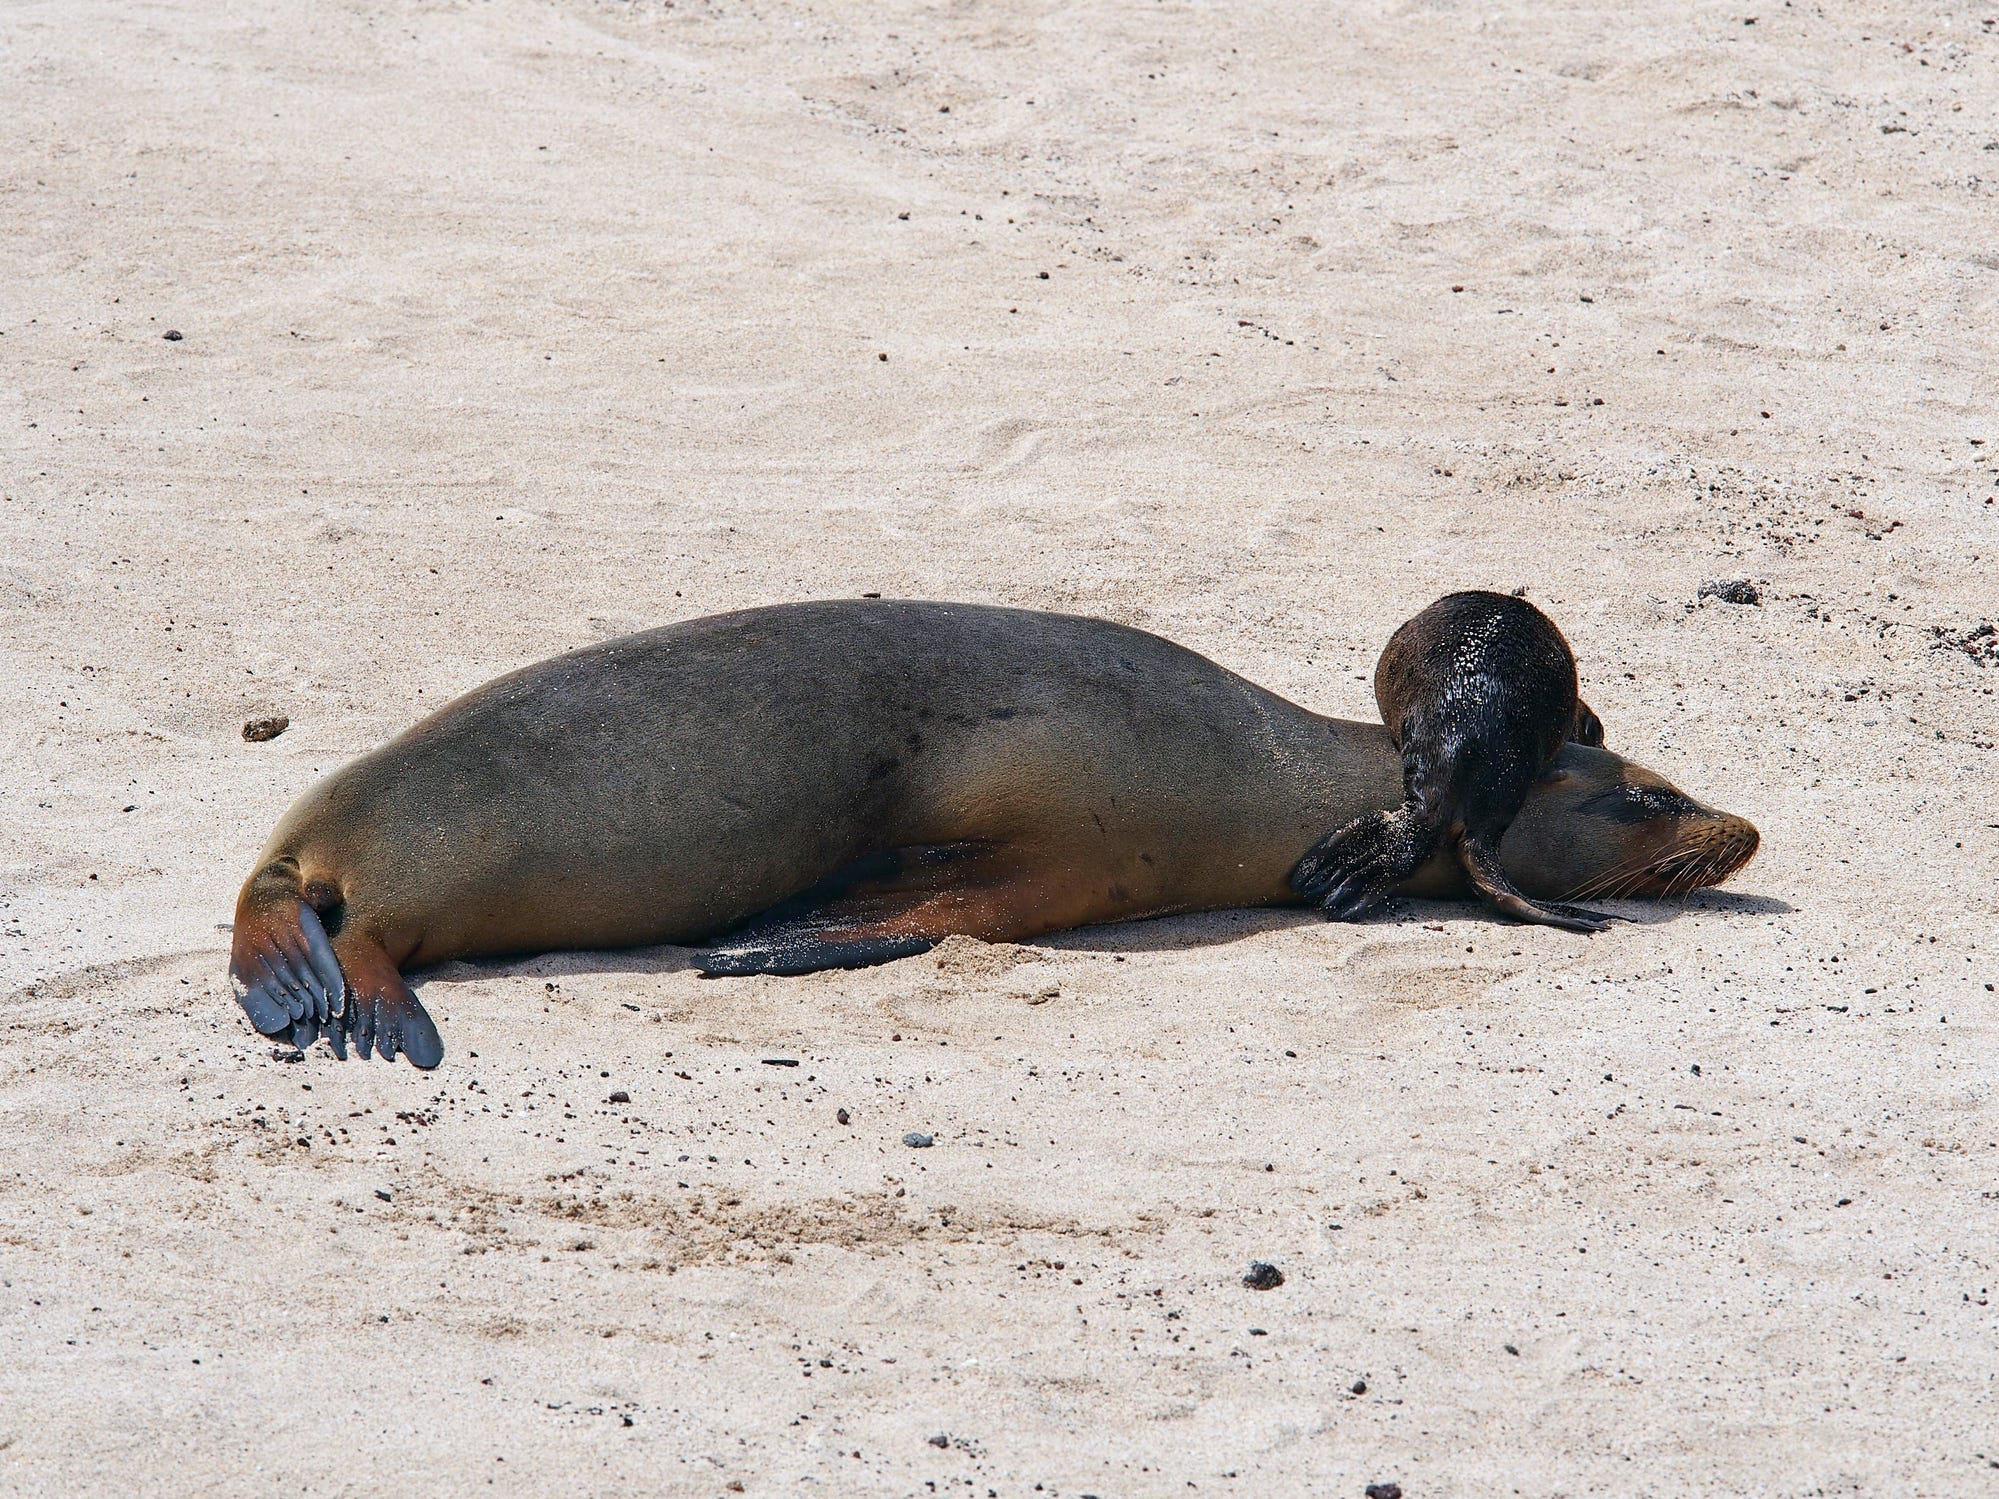 Sea lions in the Galapagos Islands, Ecuador.